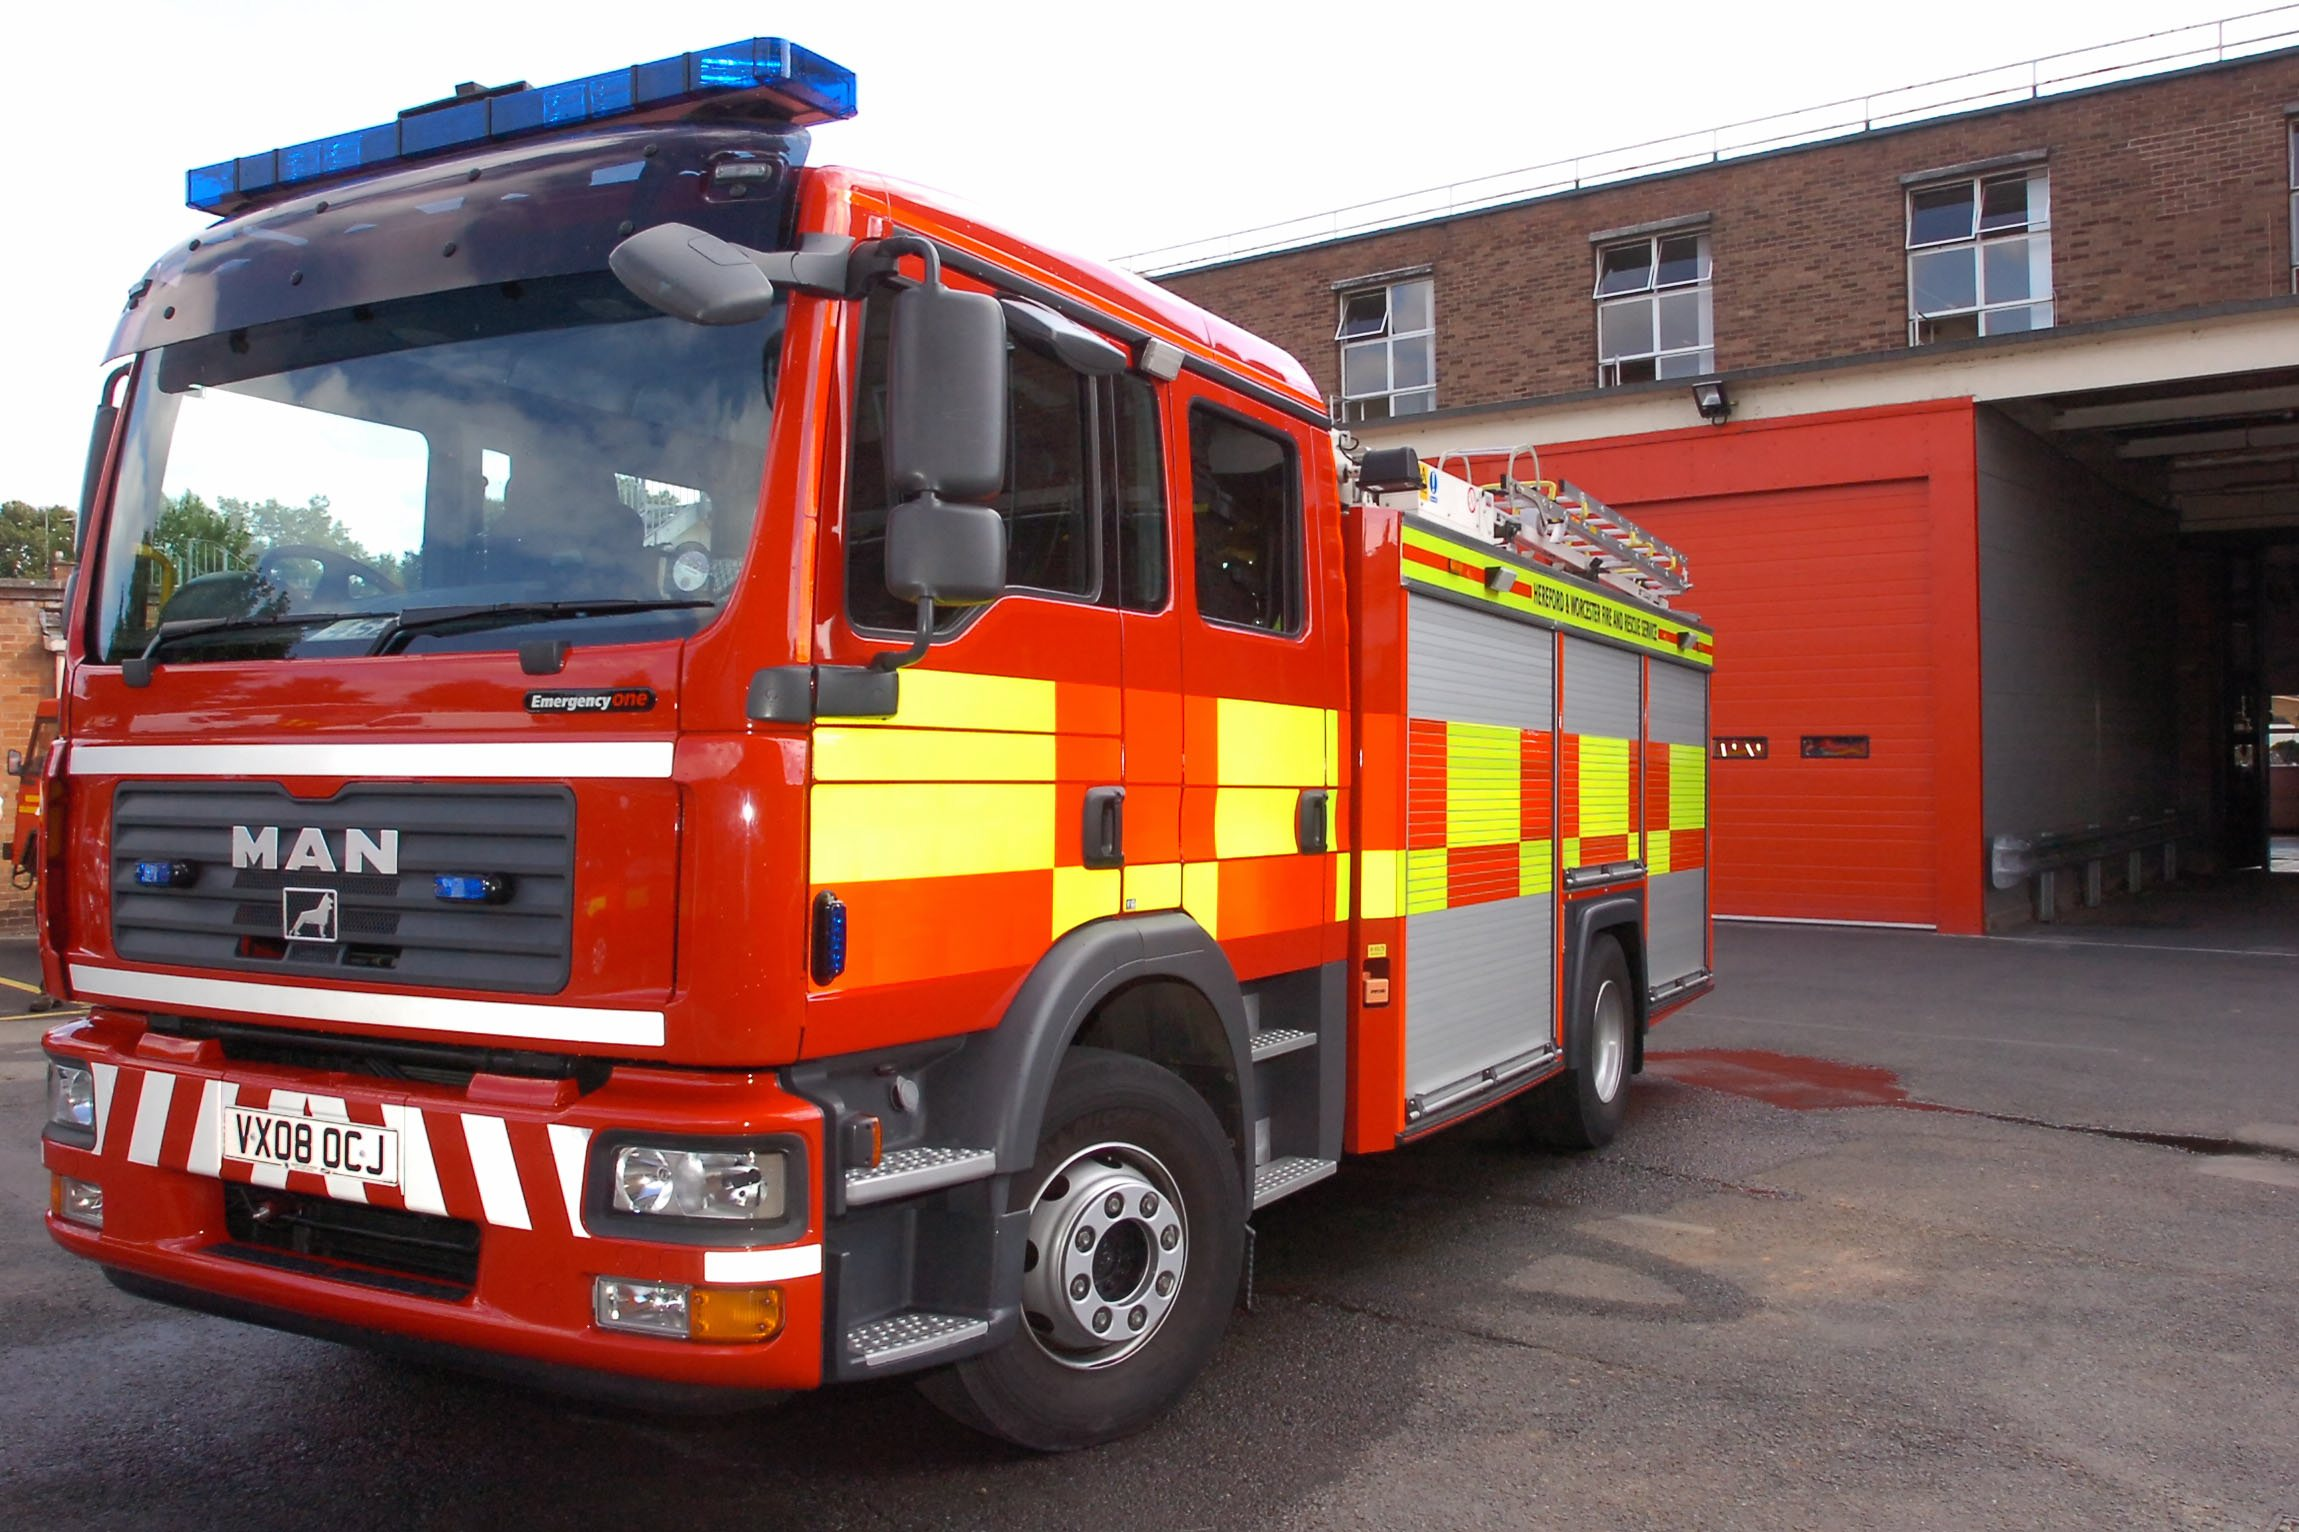 Washing machine fire extinguished by neighbour